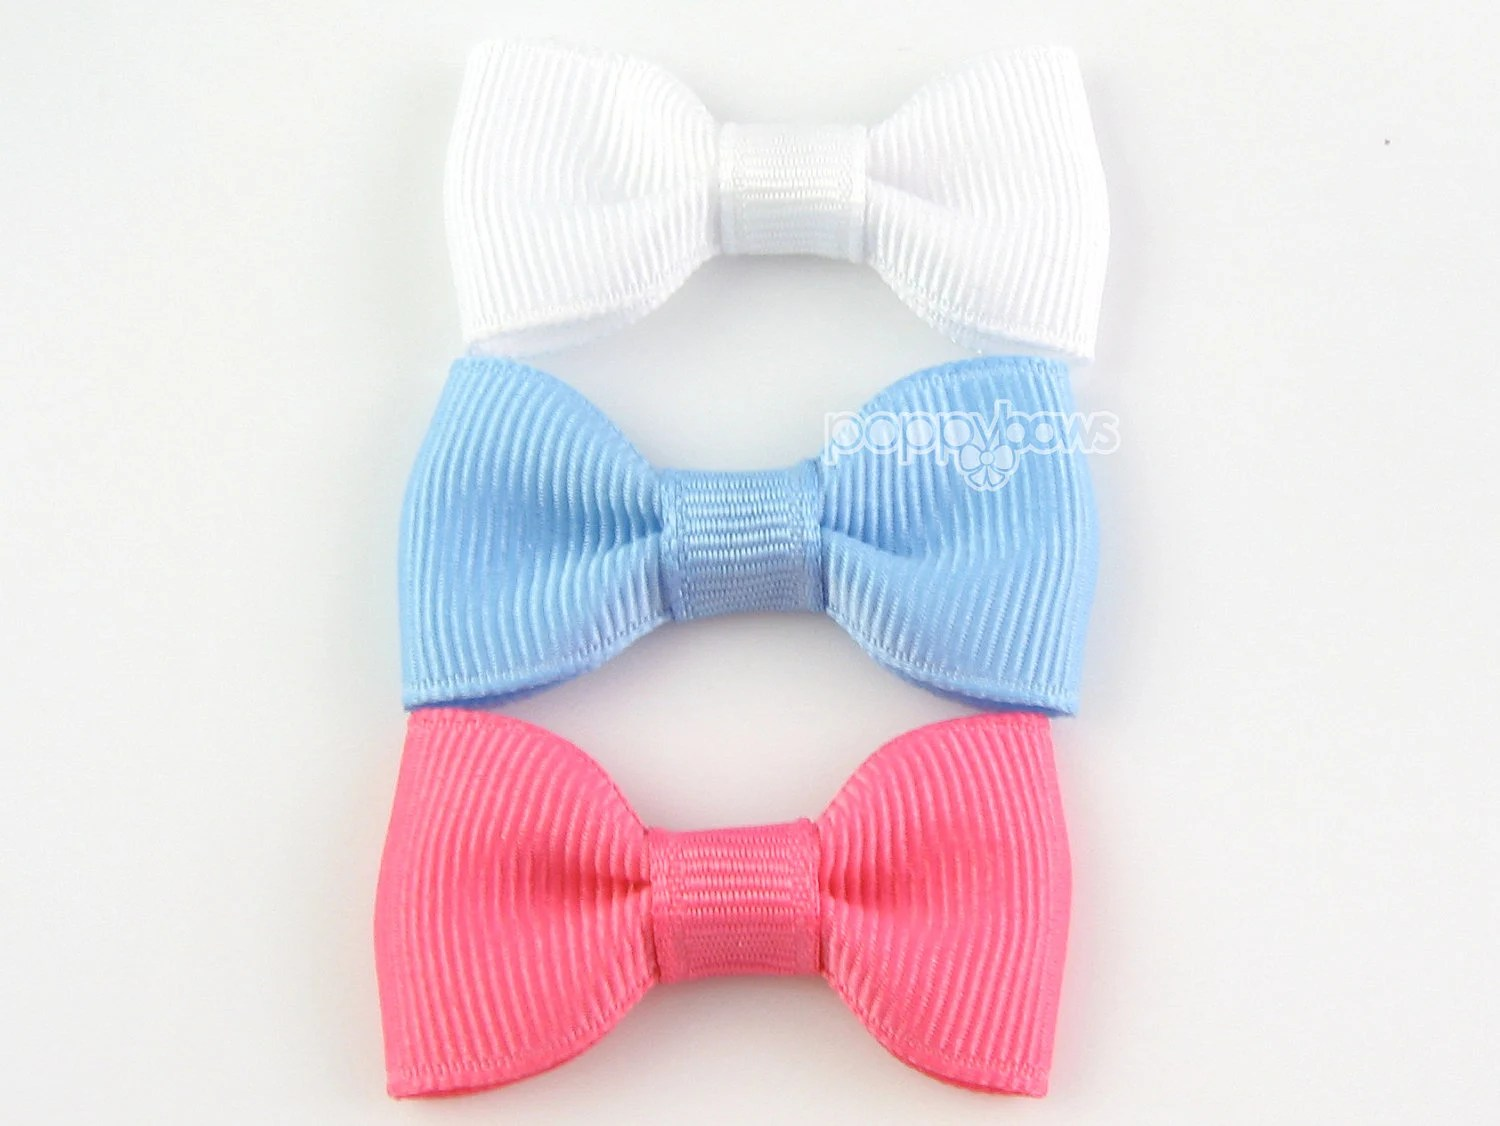 Baby Hair Bows - 3 Pack Mini Snap Clips - Small Hairbows Newborn Toddler Girls - 2 Inch Bows Non Slip Grip White Light Blue Hot Pink - PoppyBows